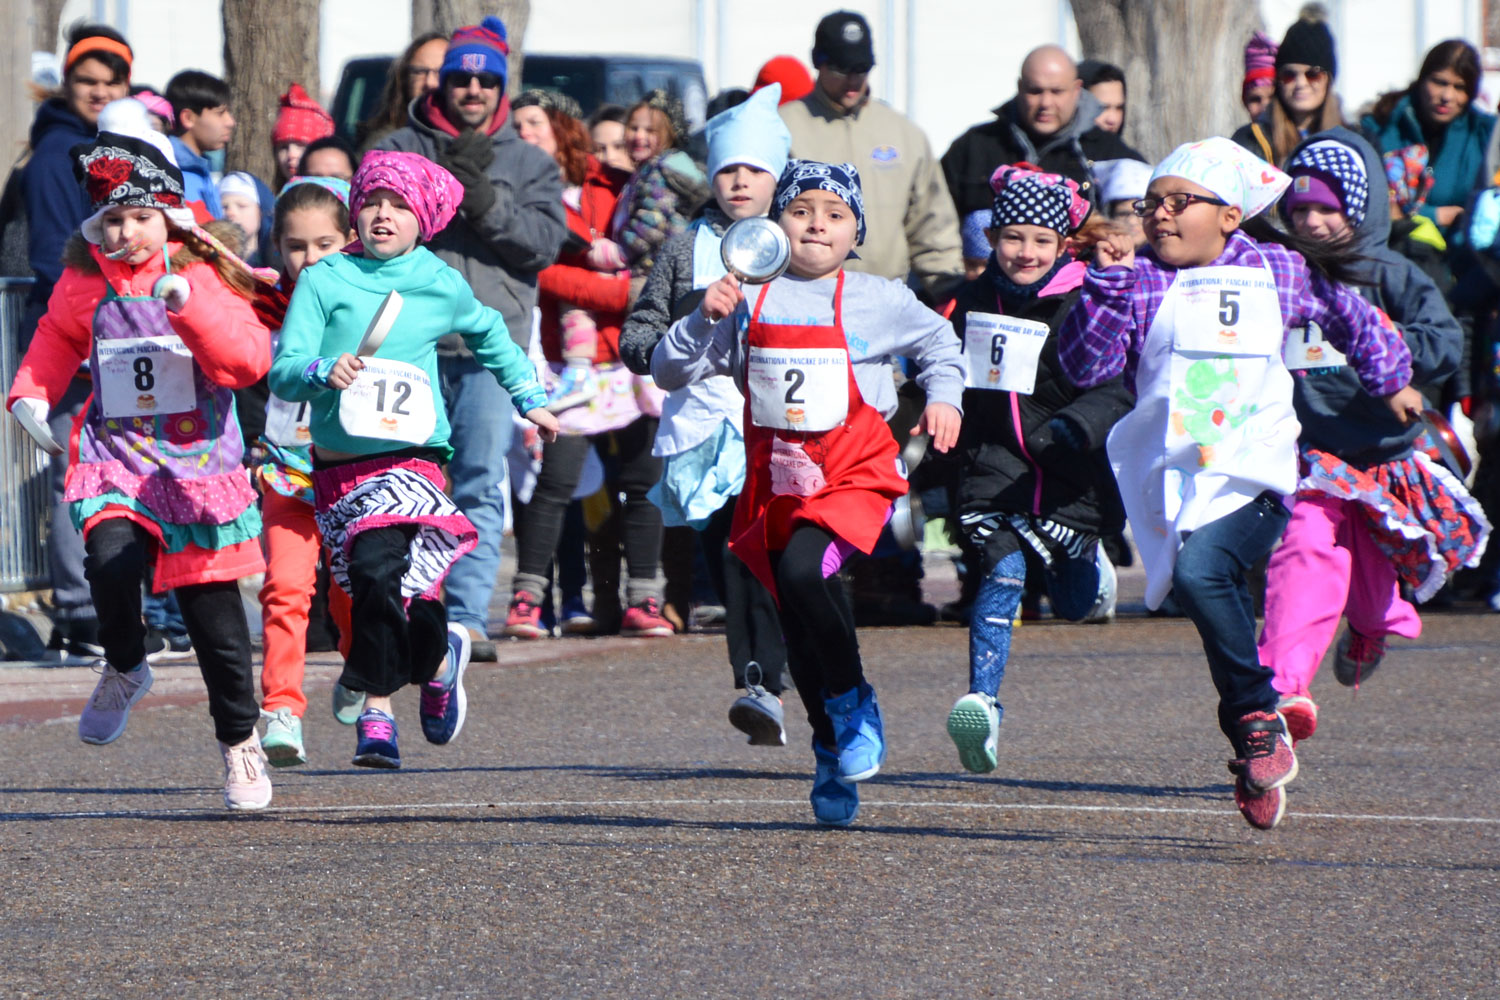 The+kids+race+to+the+finish+line+wearing+aprons+and+carrying+a+frying+pan.+These+pre-races+are+a+tradition+at+Pancake+Day.+Children+and+even+men+race+before+the+main+event+-+the+Last+Chance+Race.+All+of+the+racers+wear+aprons%2C+headscarves+and+run+with+frying+pans+and+a+pancake.